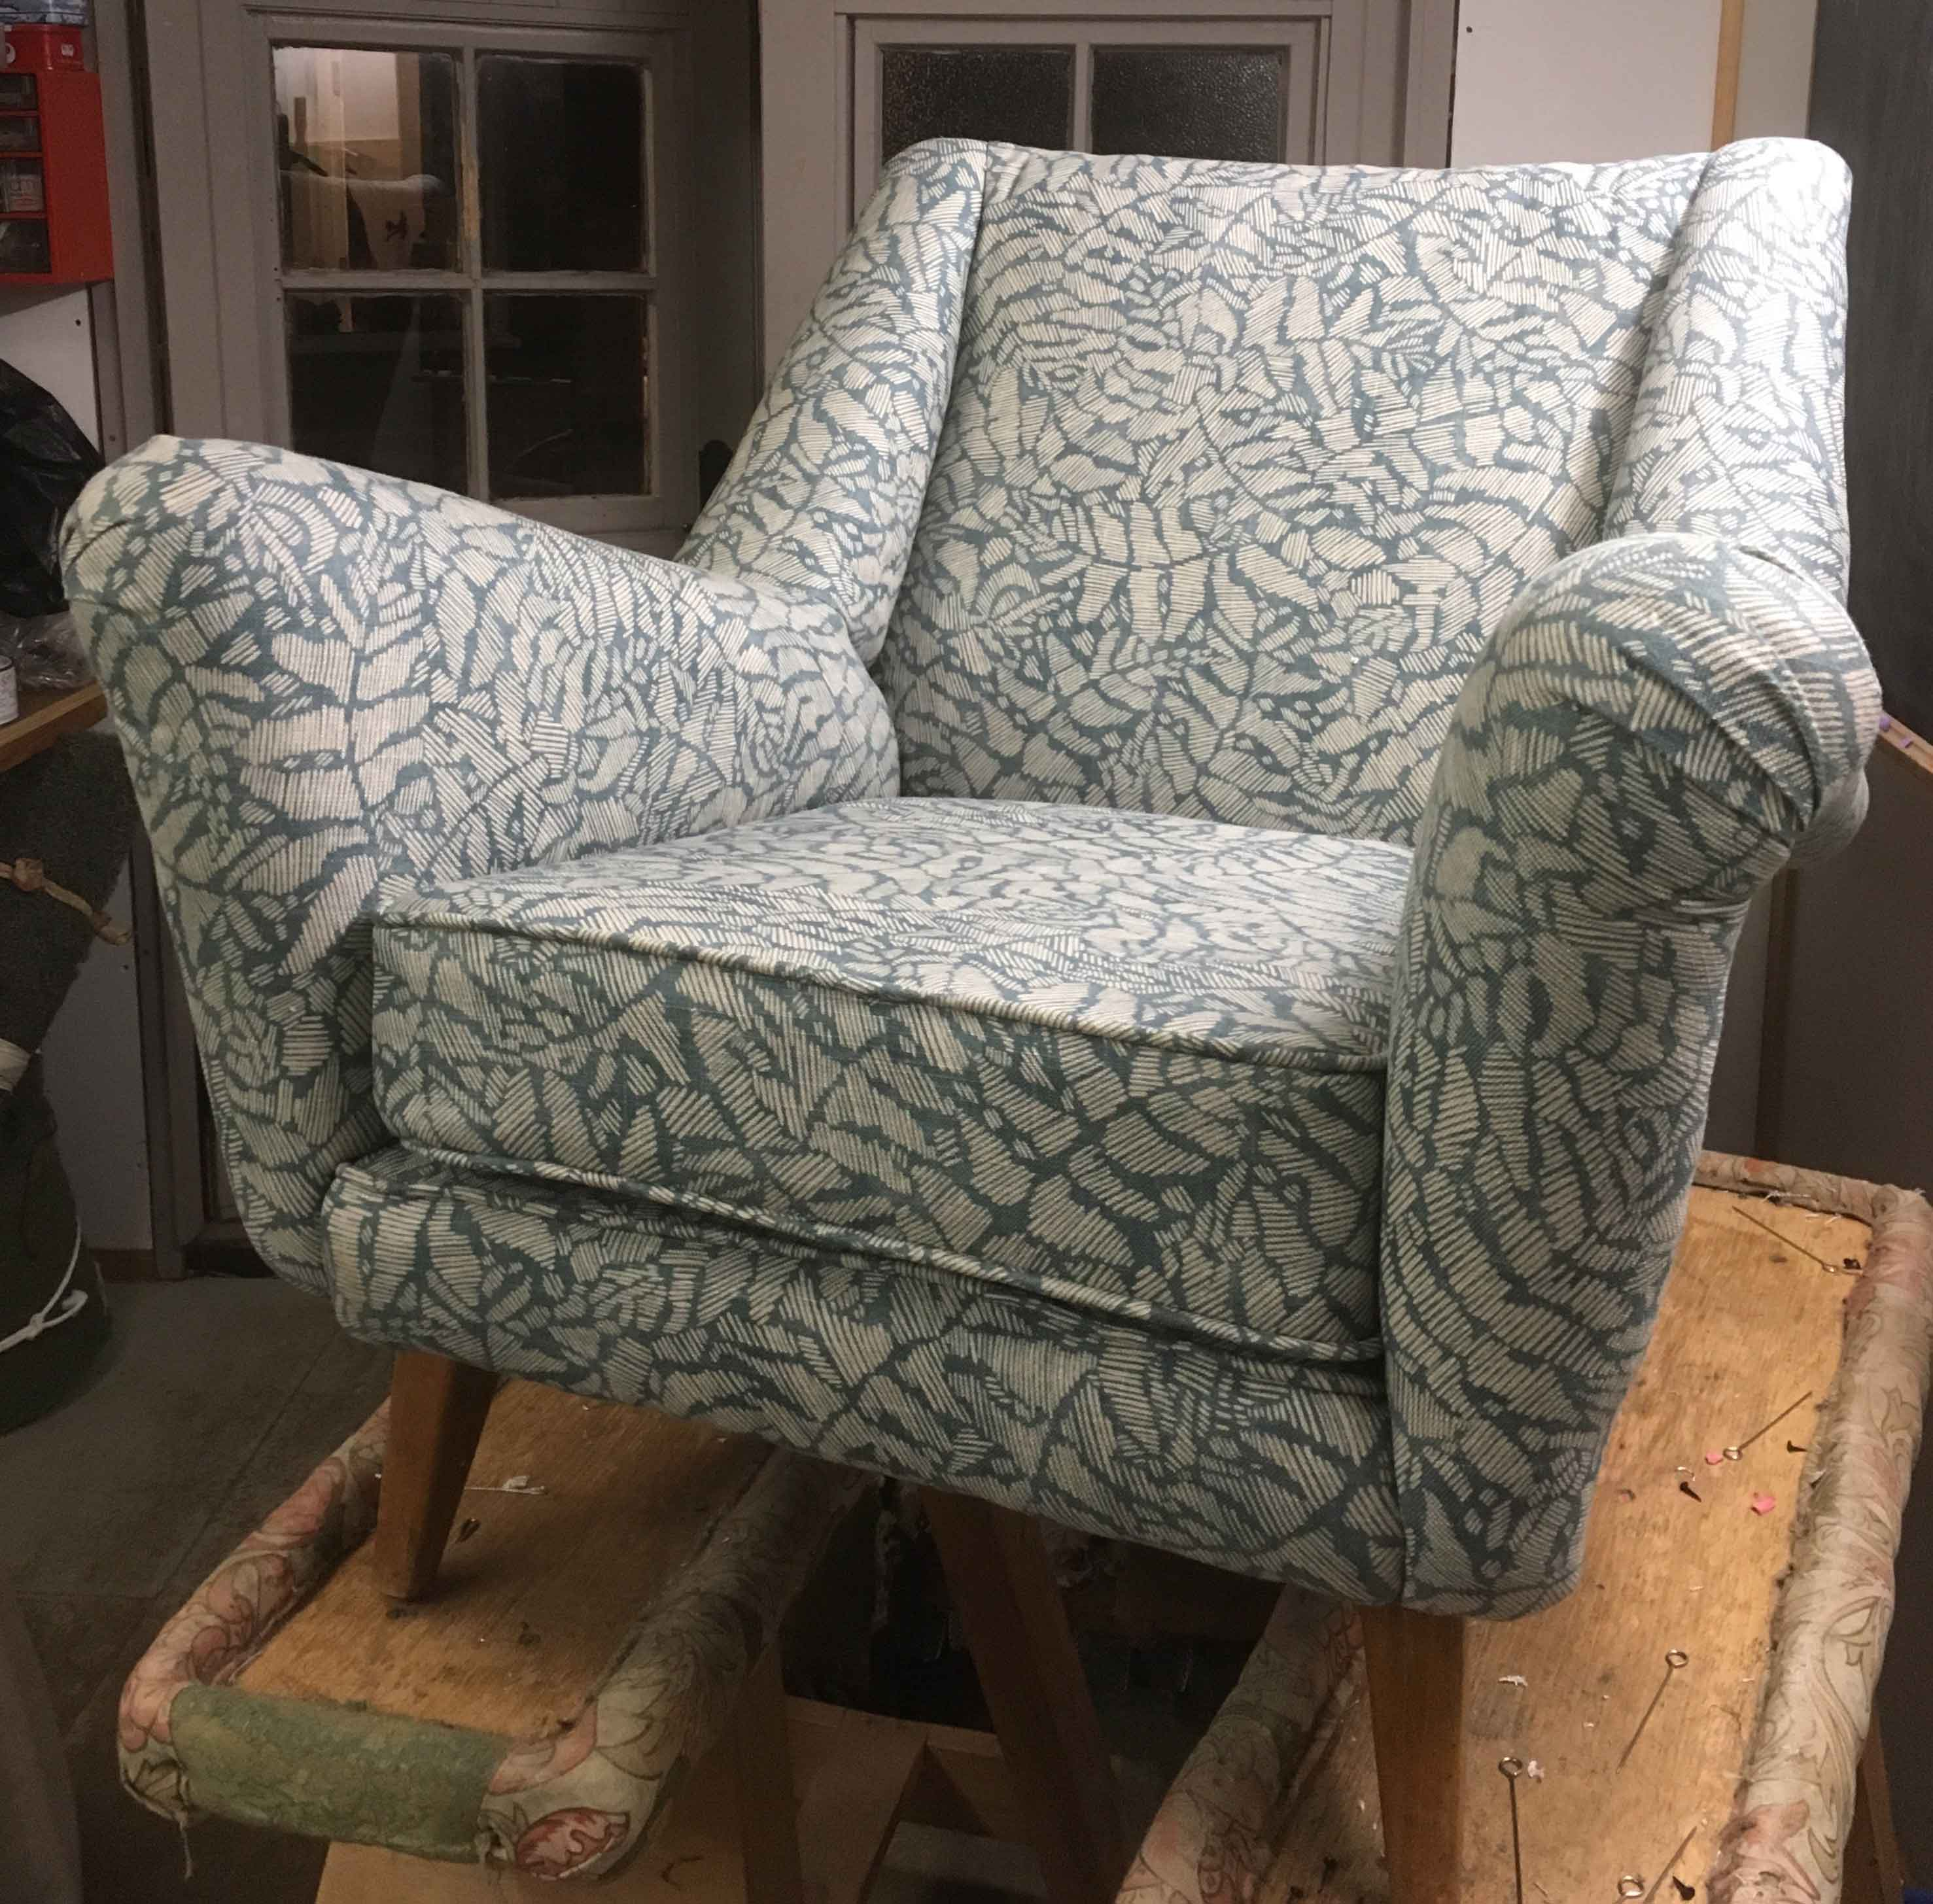 Atomic style mid century armchair upholstered in carnival fabric by Linwood